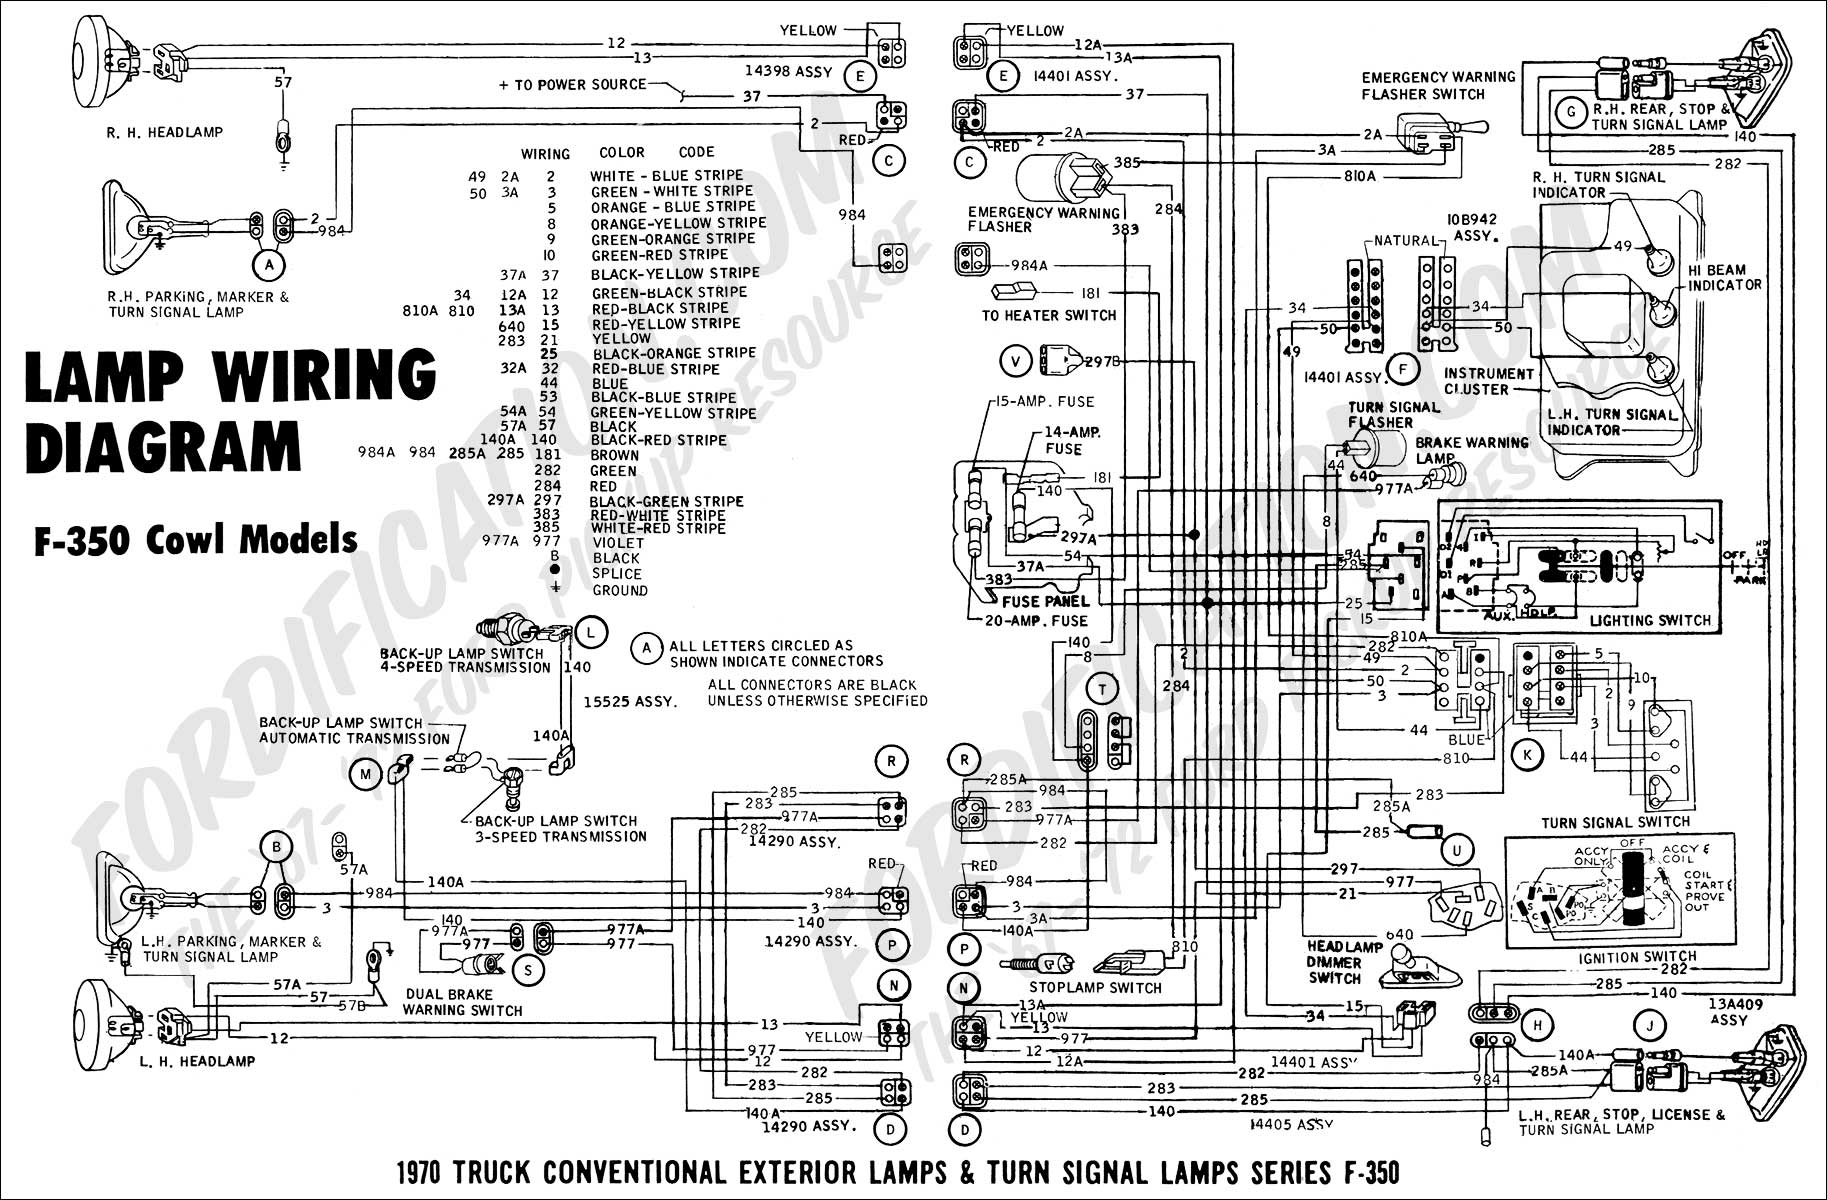 1993 ford ranger fuel pump wiring diagram push to talk switch 1999 f250 dome light autos post